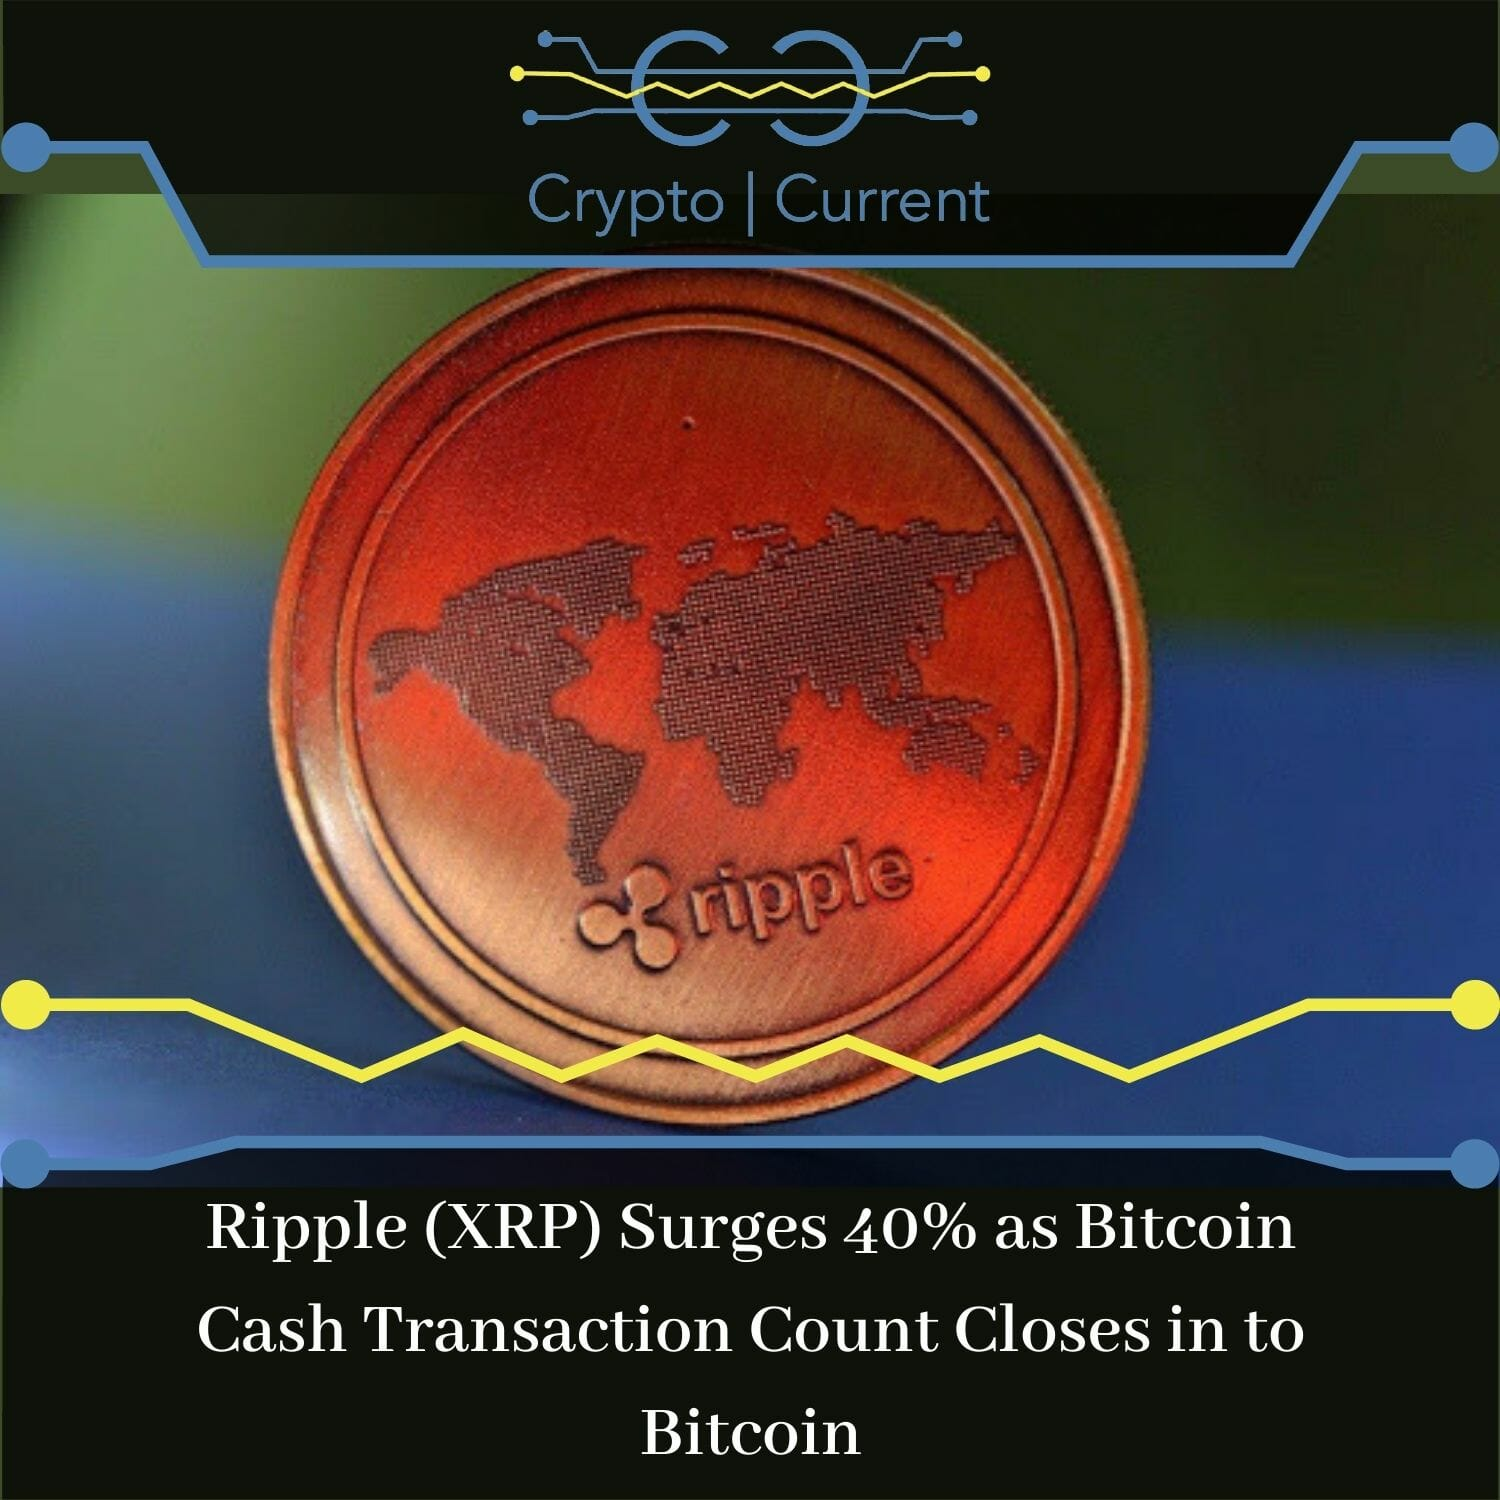 Ripple (XRP) Surges 40% as Bitcoin Cash Transaction Count Closes in to Bitcoin